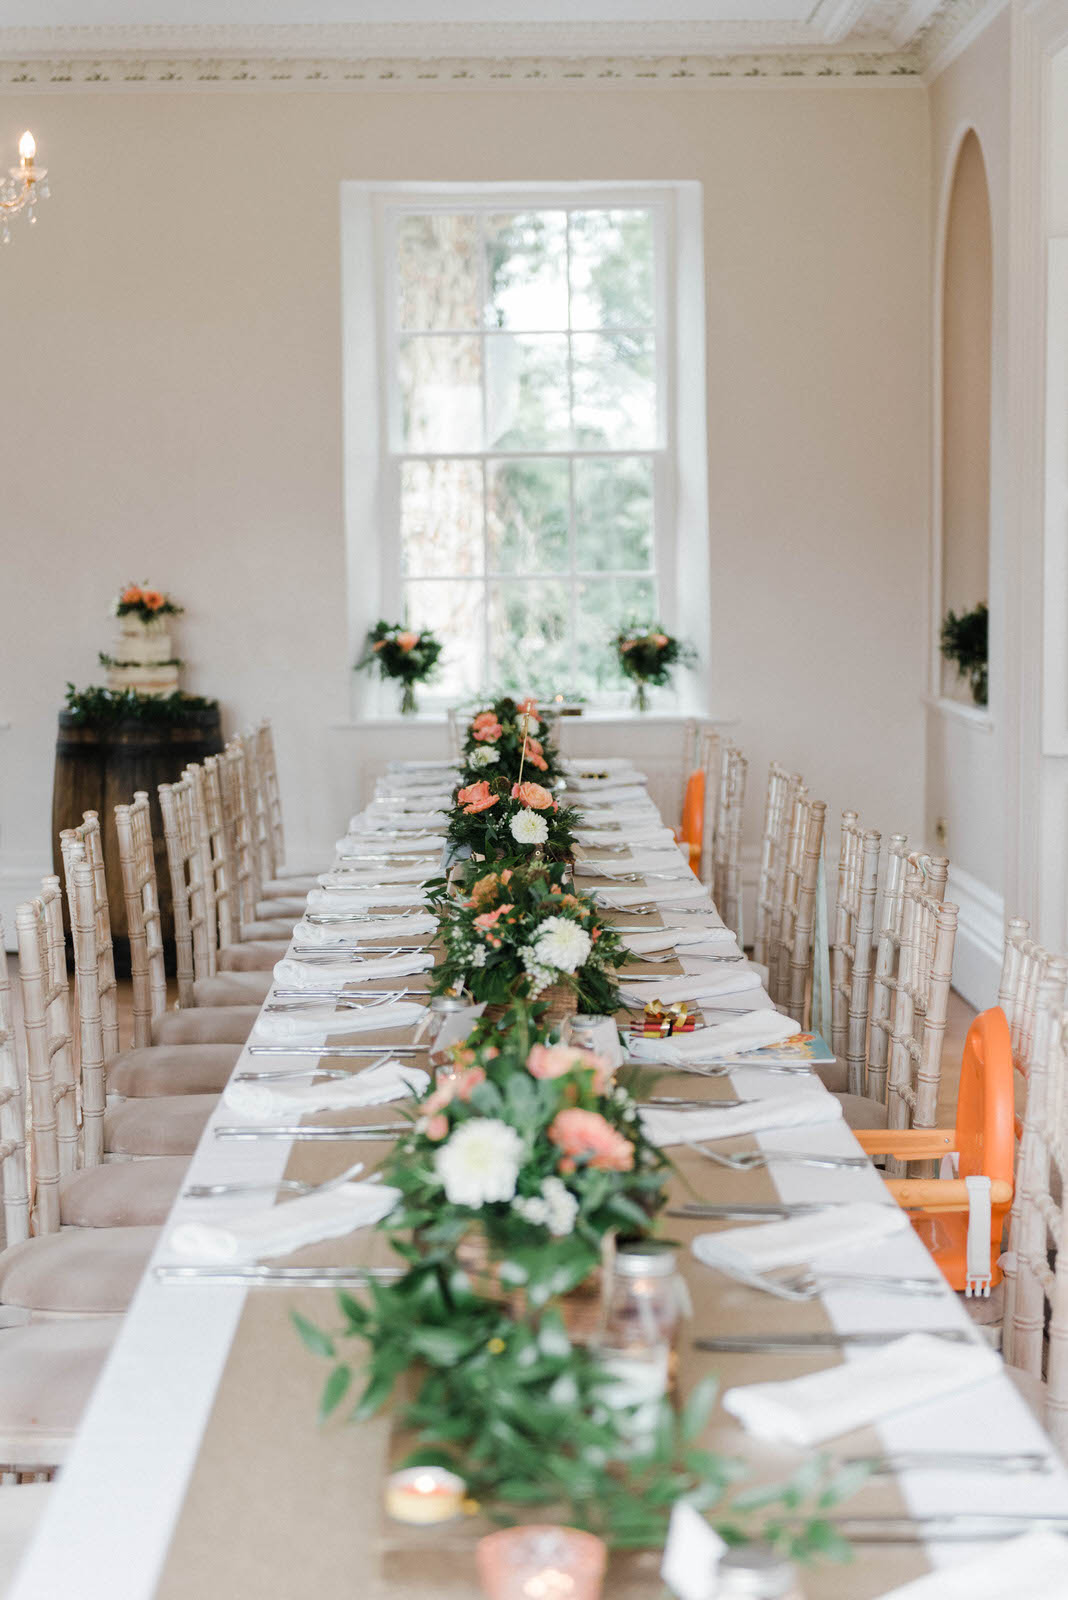 long wedding table with greenery table centres